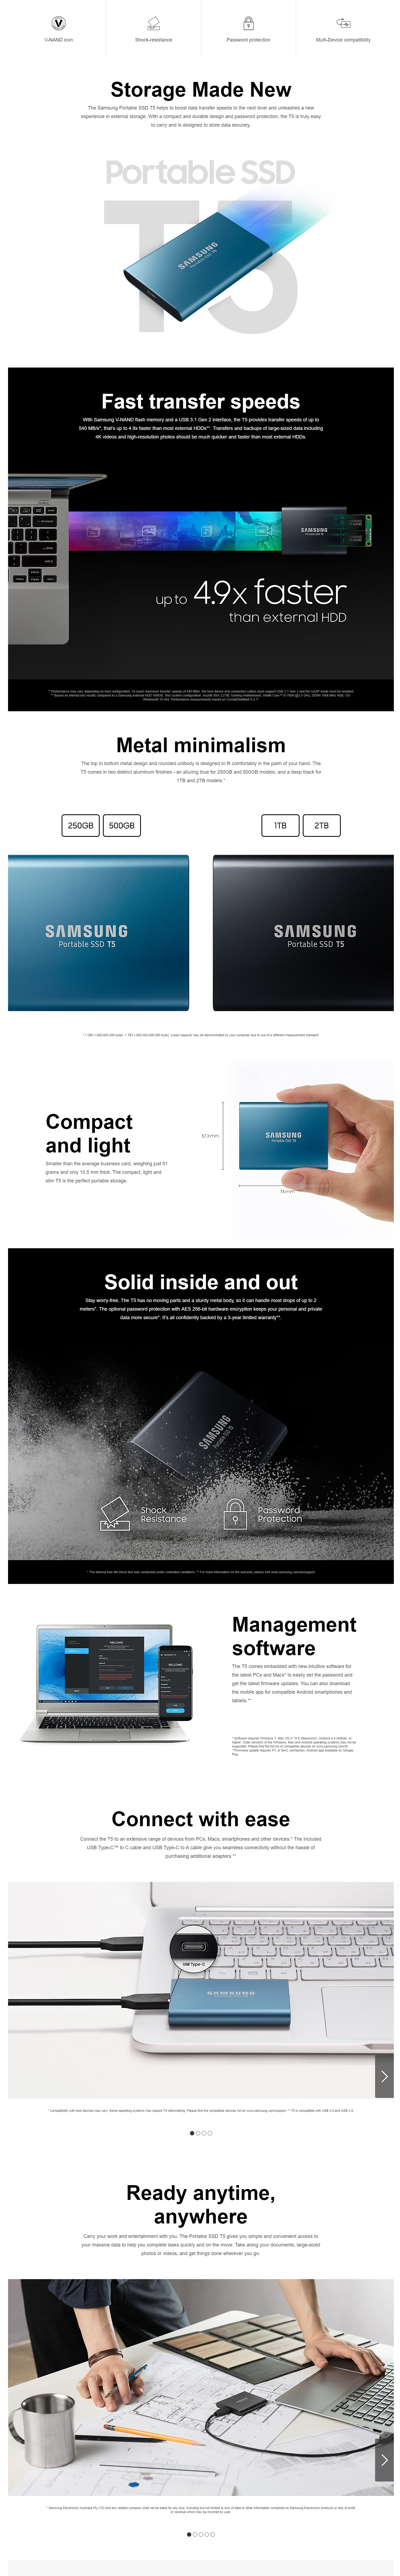 A large marketing image providing additional information about the product Samsung T5 2TB USB3.1 Black Portable SSD - Additional alt info not provided